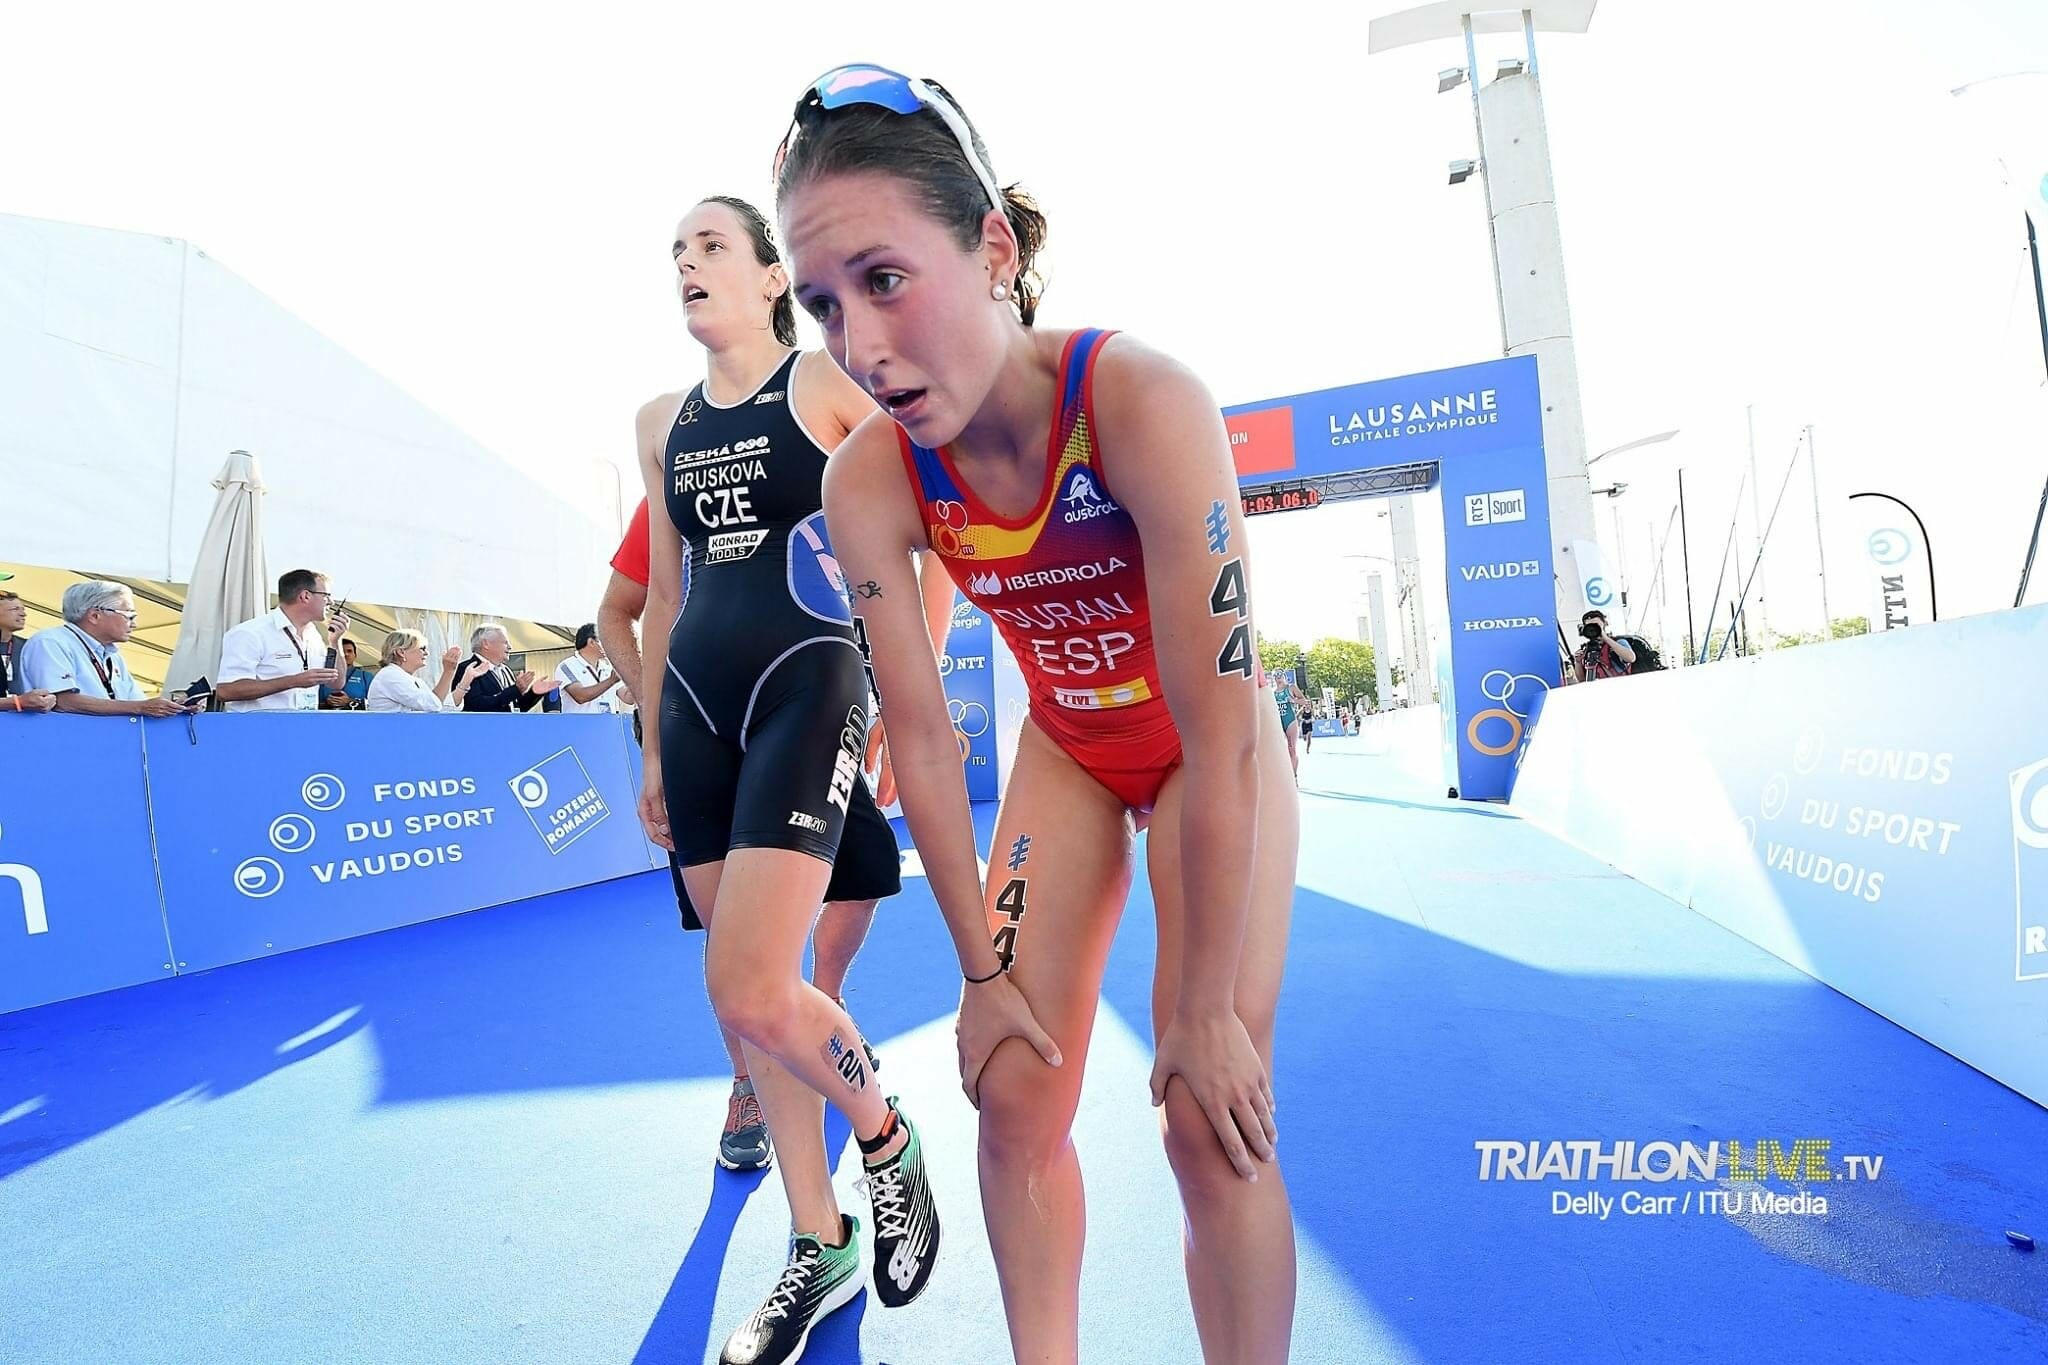 LAURA DURAN TRIATLON